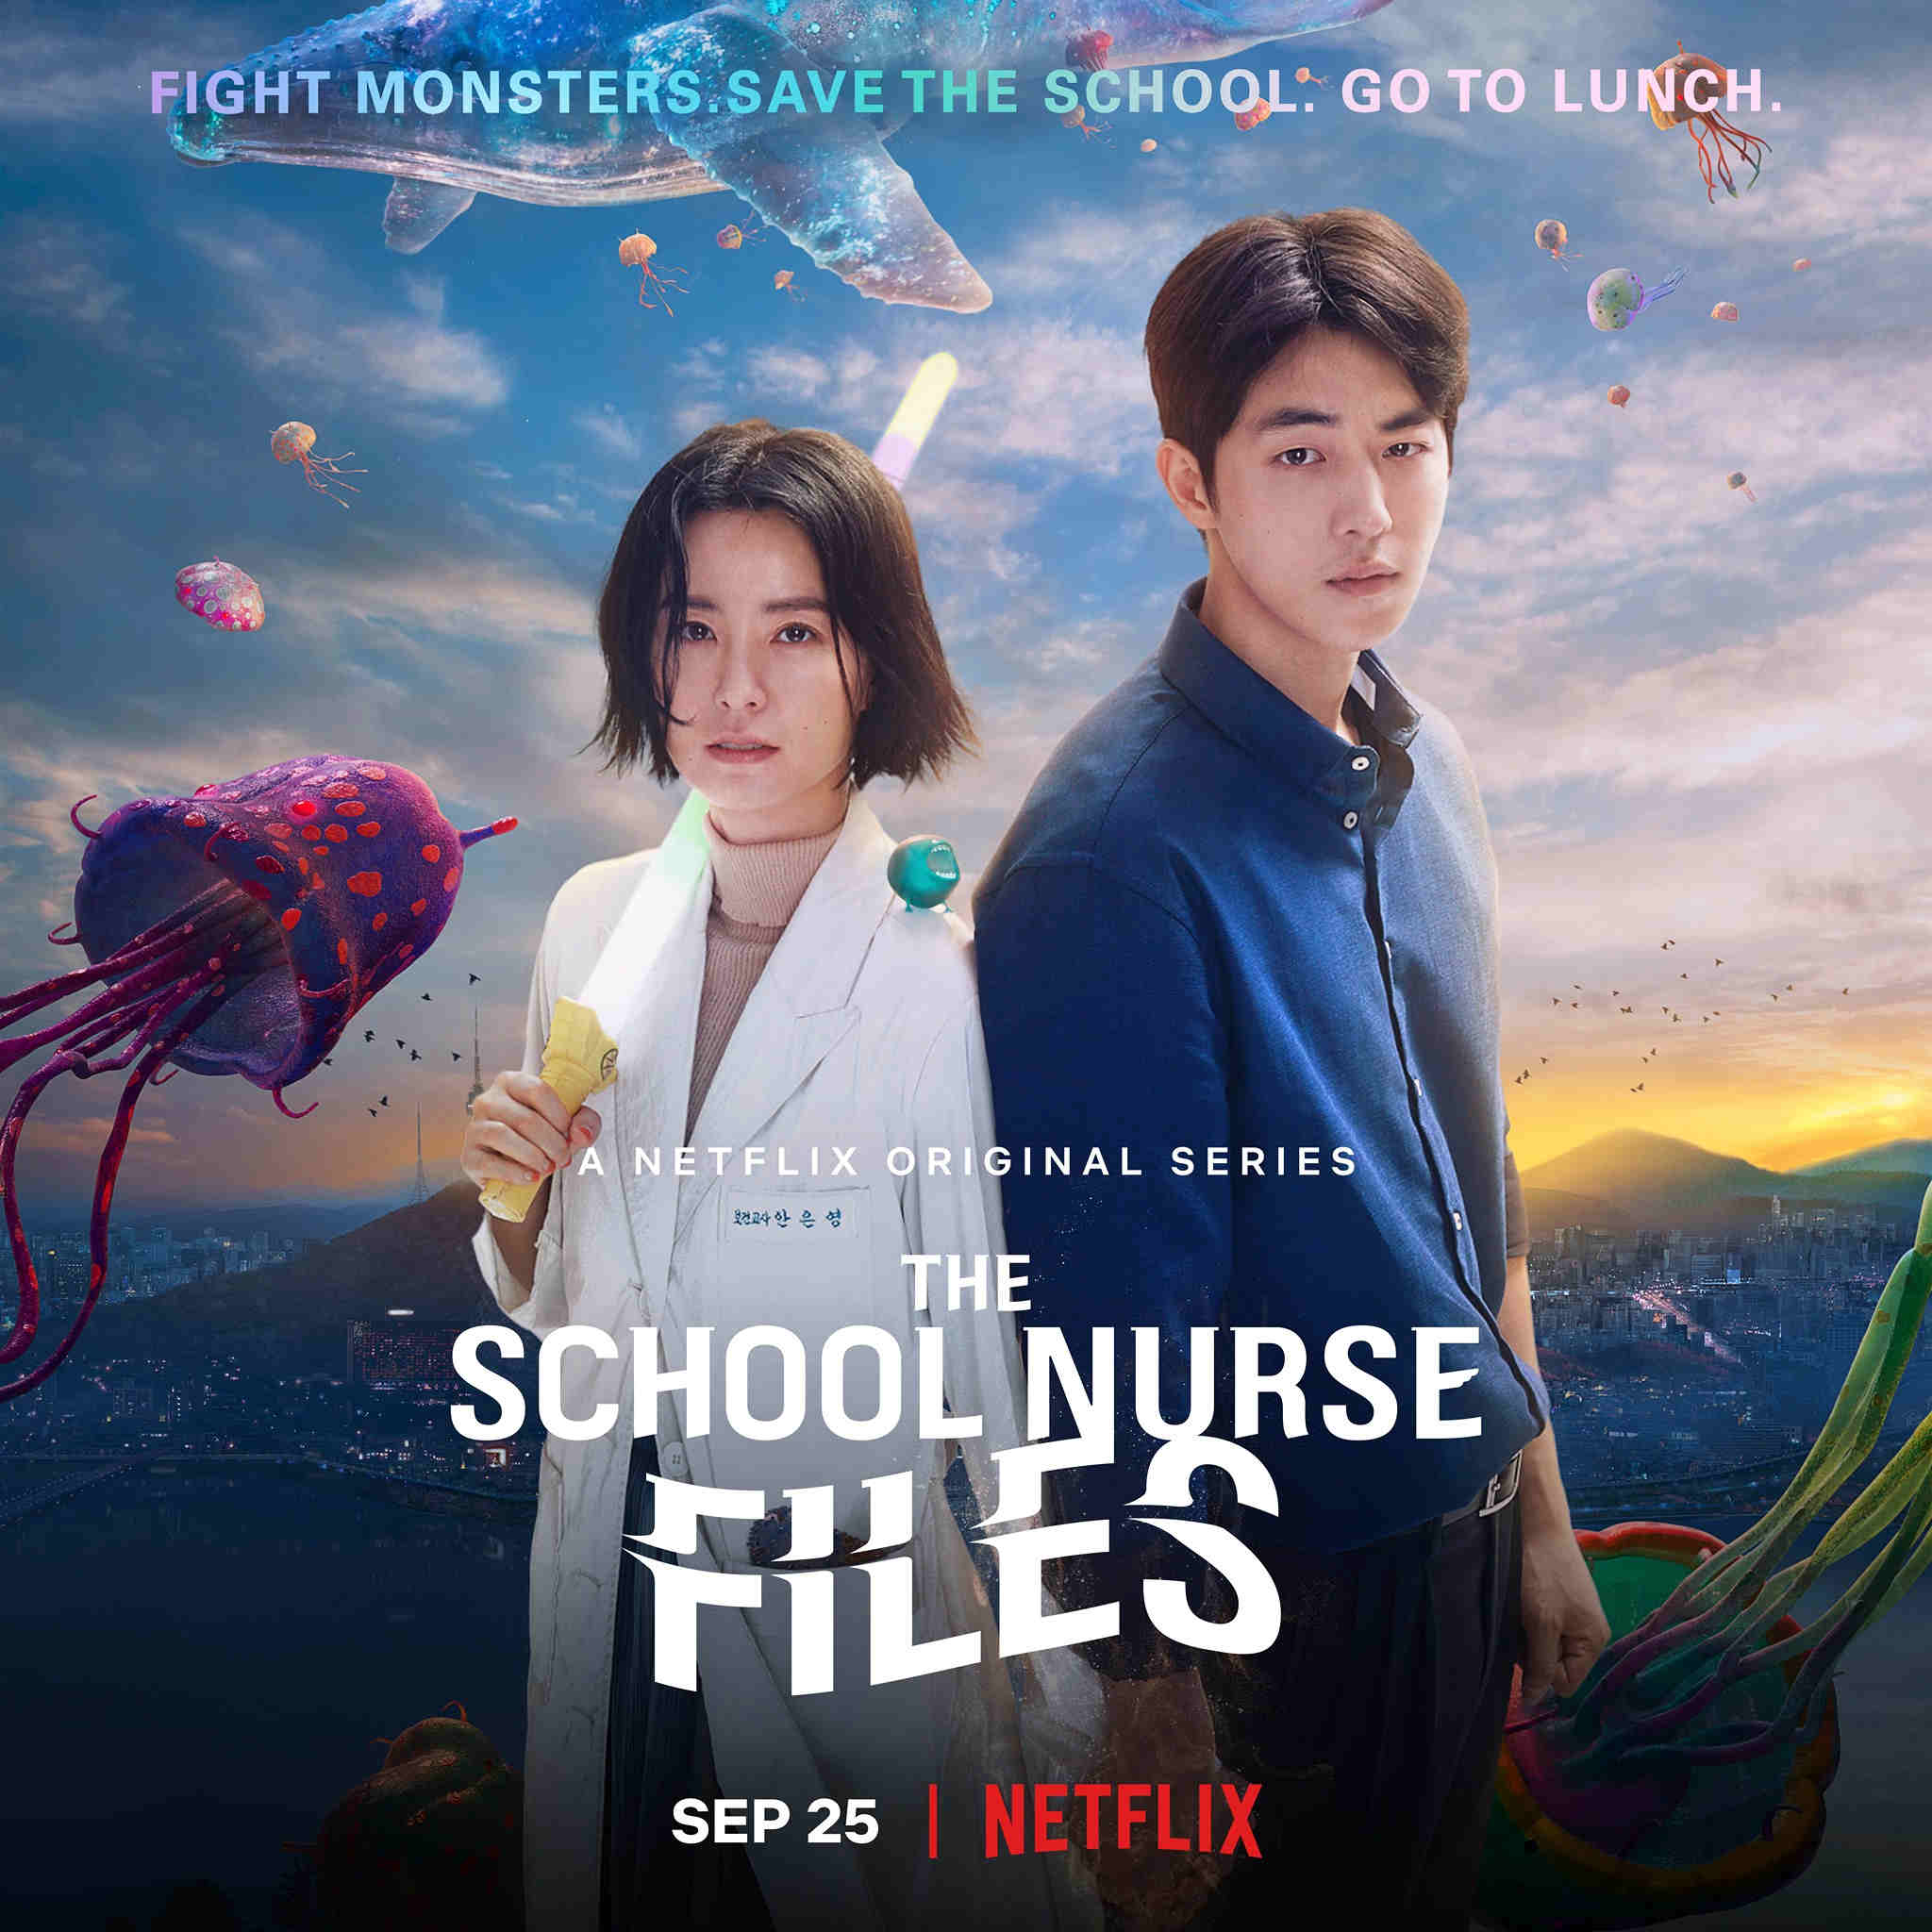 New Korean Dramas 2020 - The School Nurse Files, Jung Yu-mi, Nam Joo-hyuk